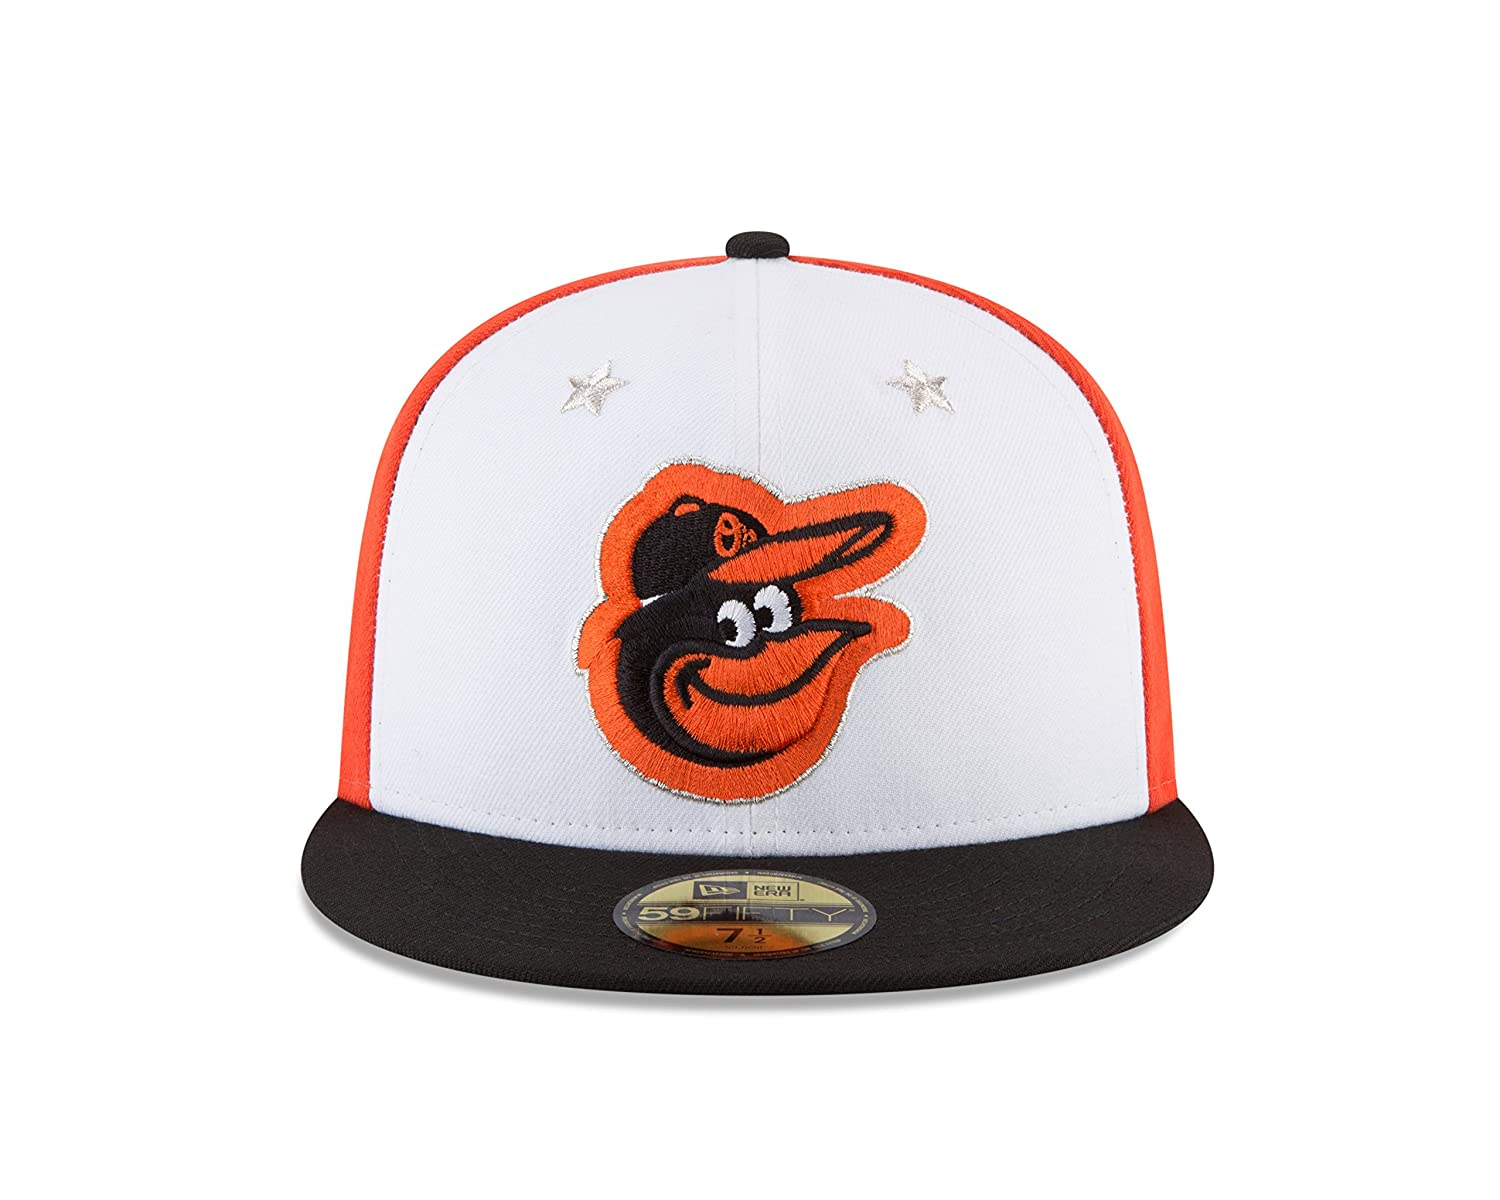 0bec4b1589394f Amazon.com : New Era Baltimore Orioles 2018 MLB All-Star Game On-Field  59FIFTY Fitted Hat - White/Black : Sports & Outdoors